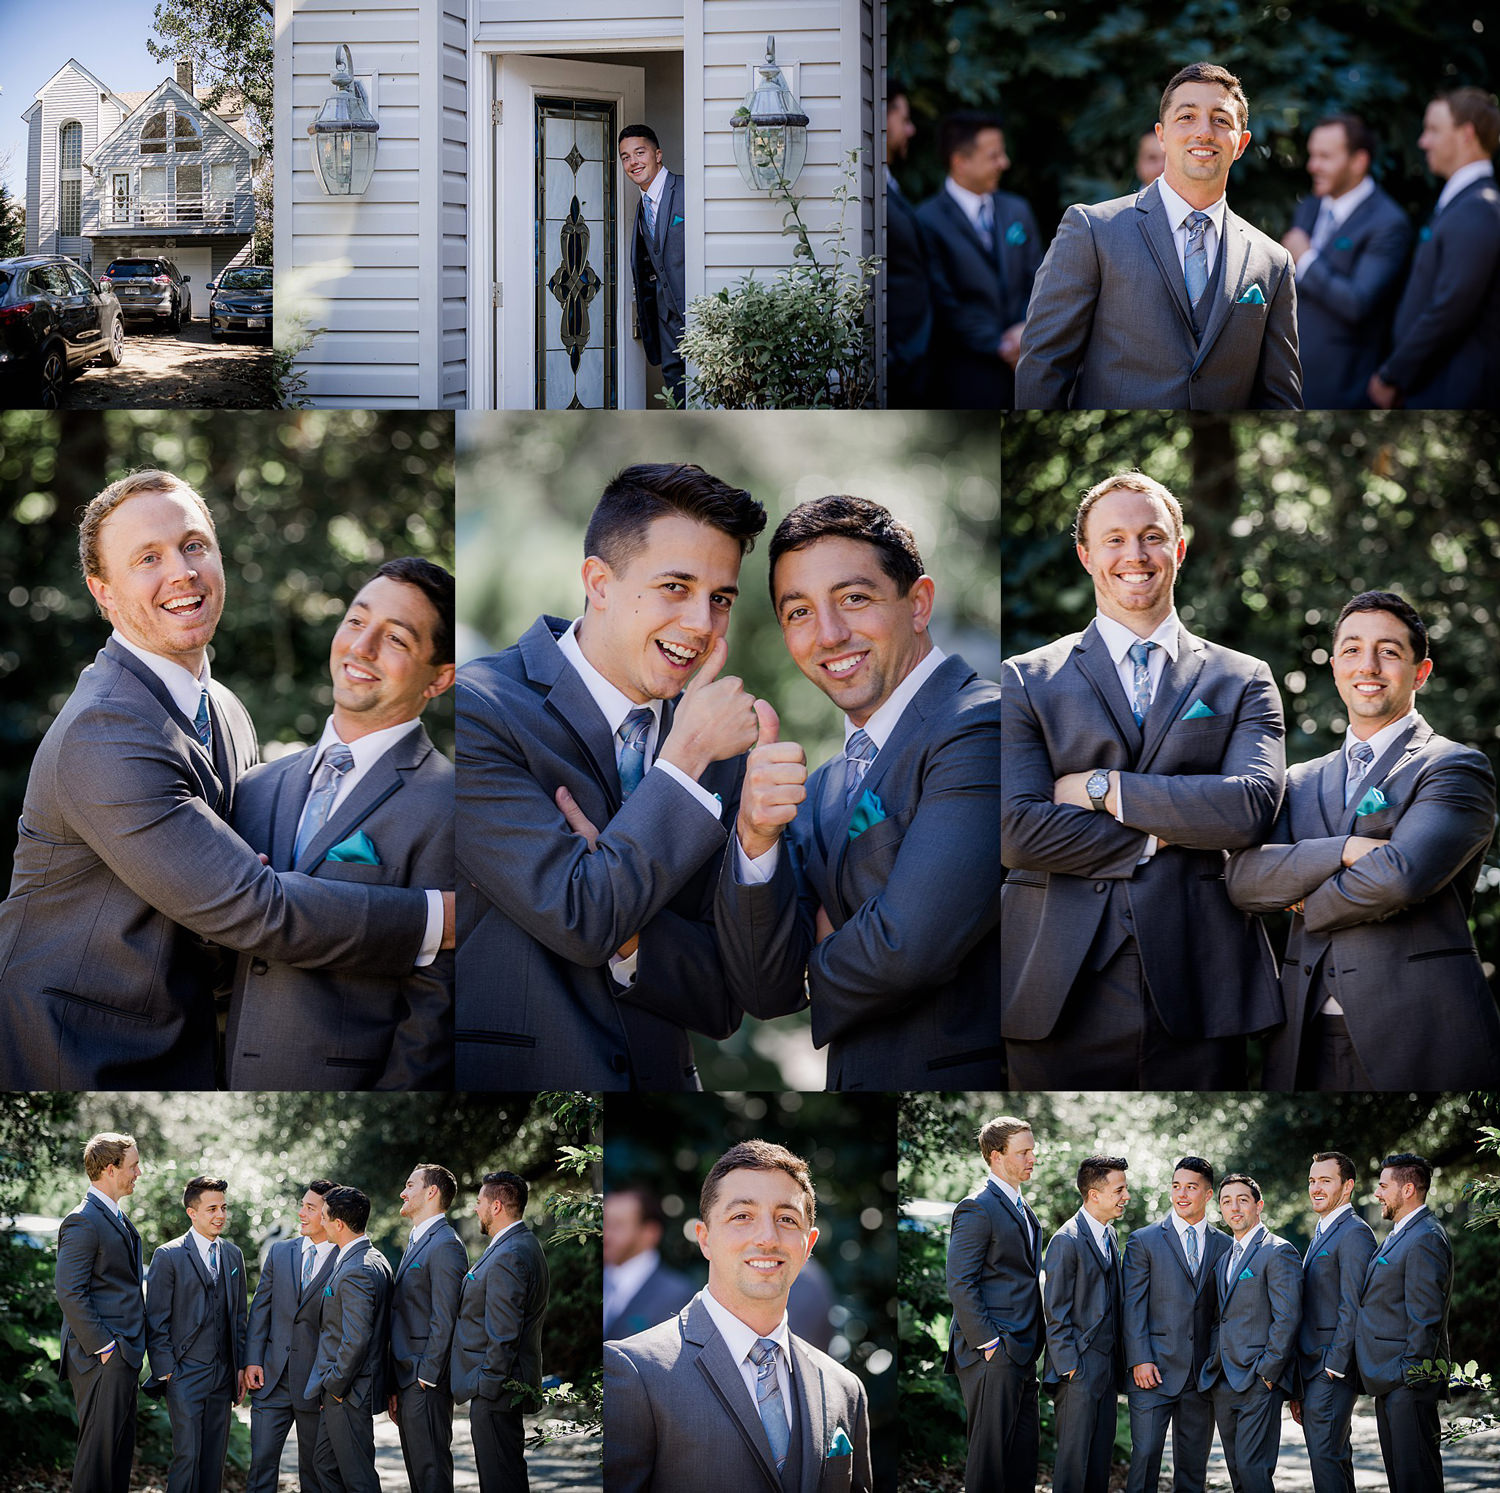 groomsmen-photos-MOCA_virginia-beach-wedding-photography-melissa-bliss-photography.jpg